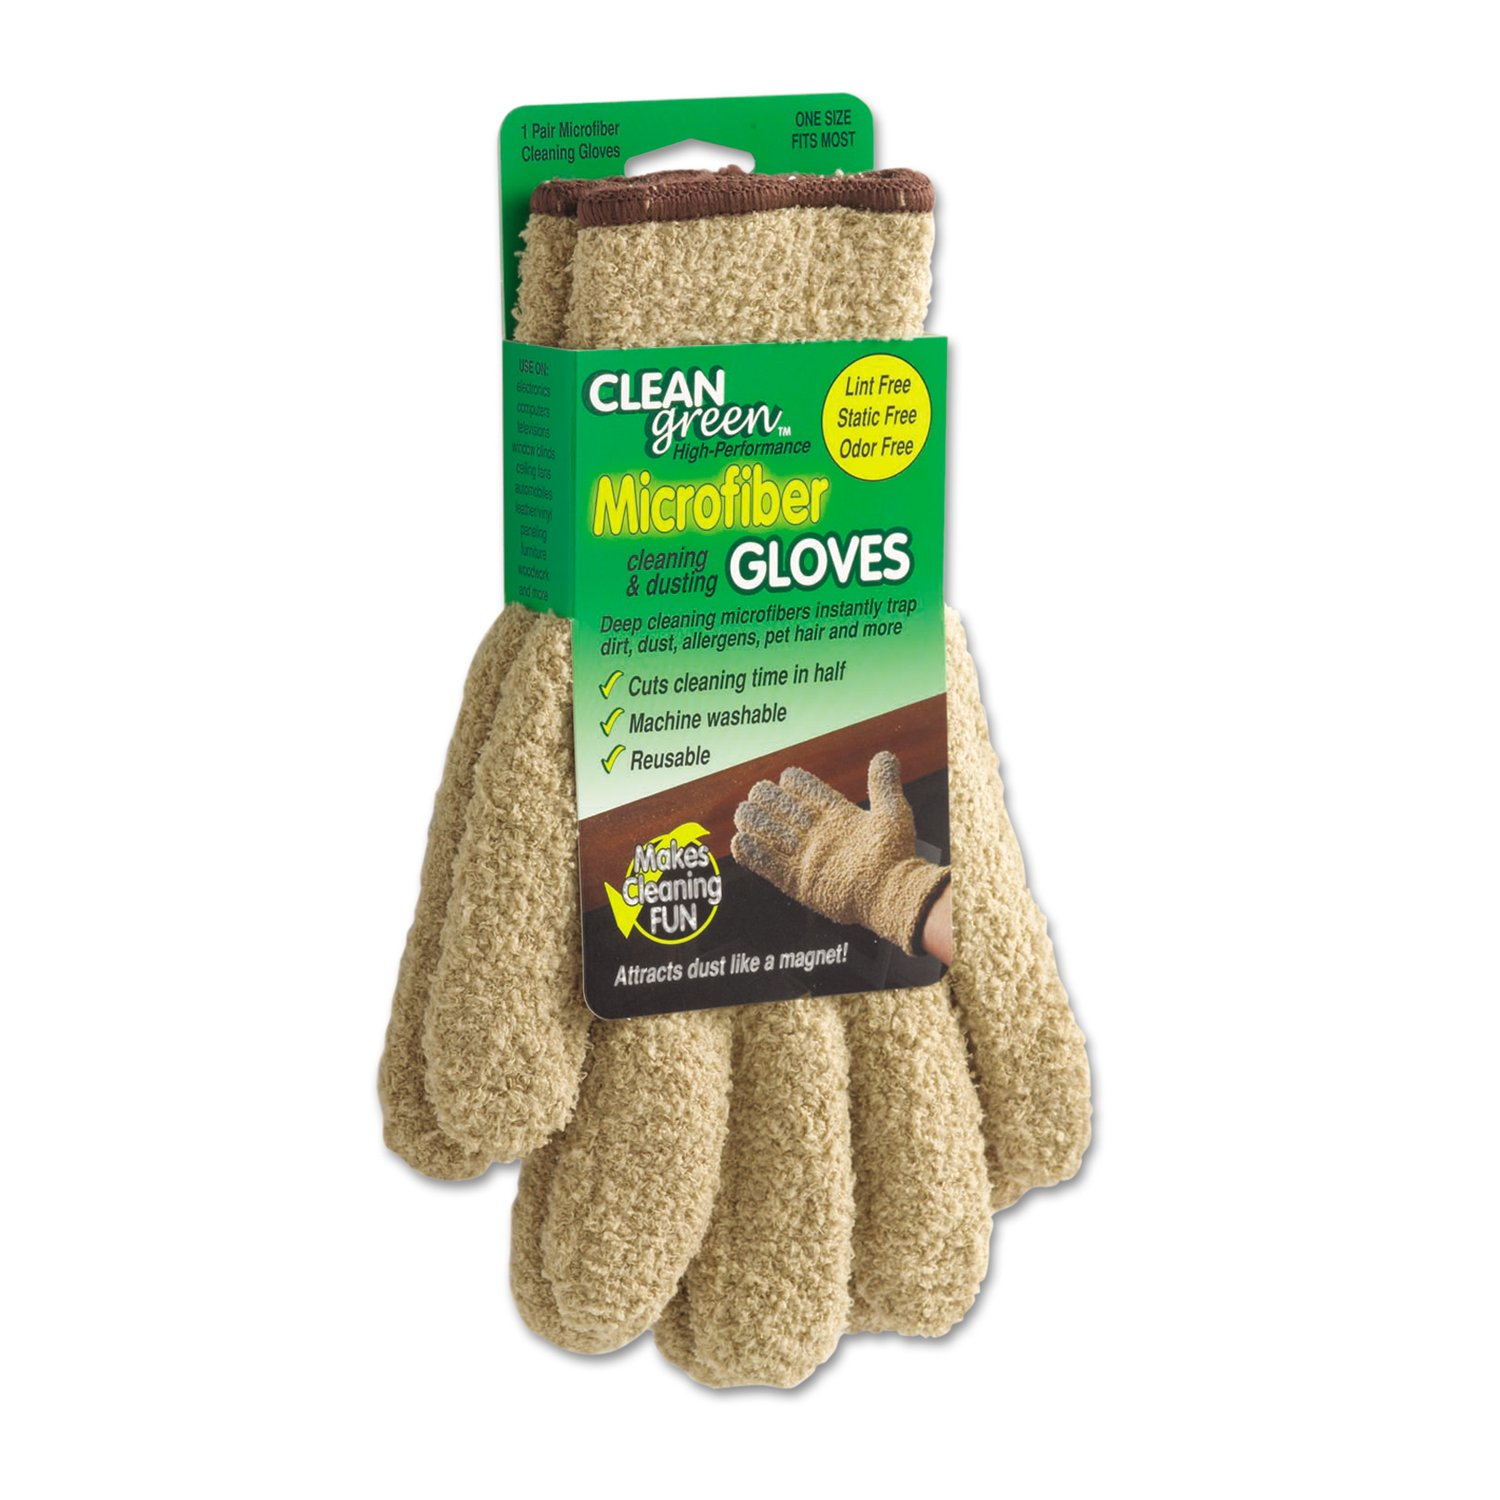 Master Manufacturing CleanGreen Microfiber Cleaning Gloves, One Size, Traps Dirt, Dust, Allergens, Pet Hair and More, Environmentally Safe (18040)